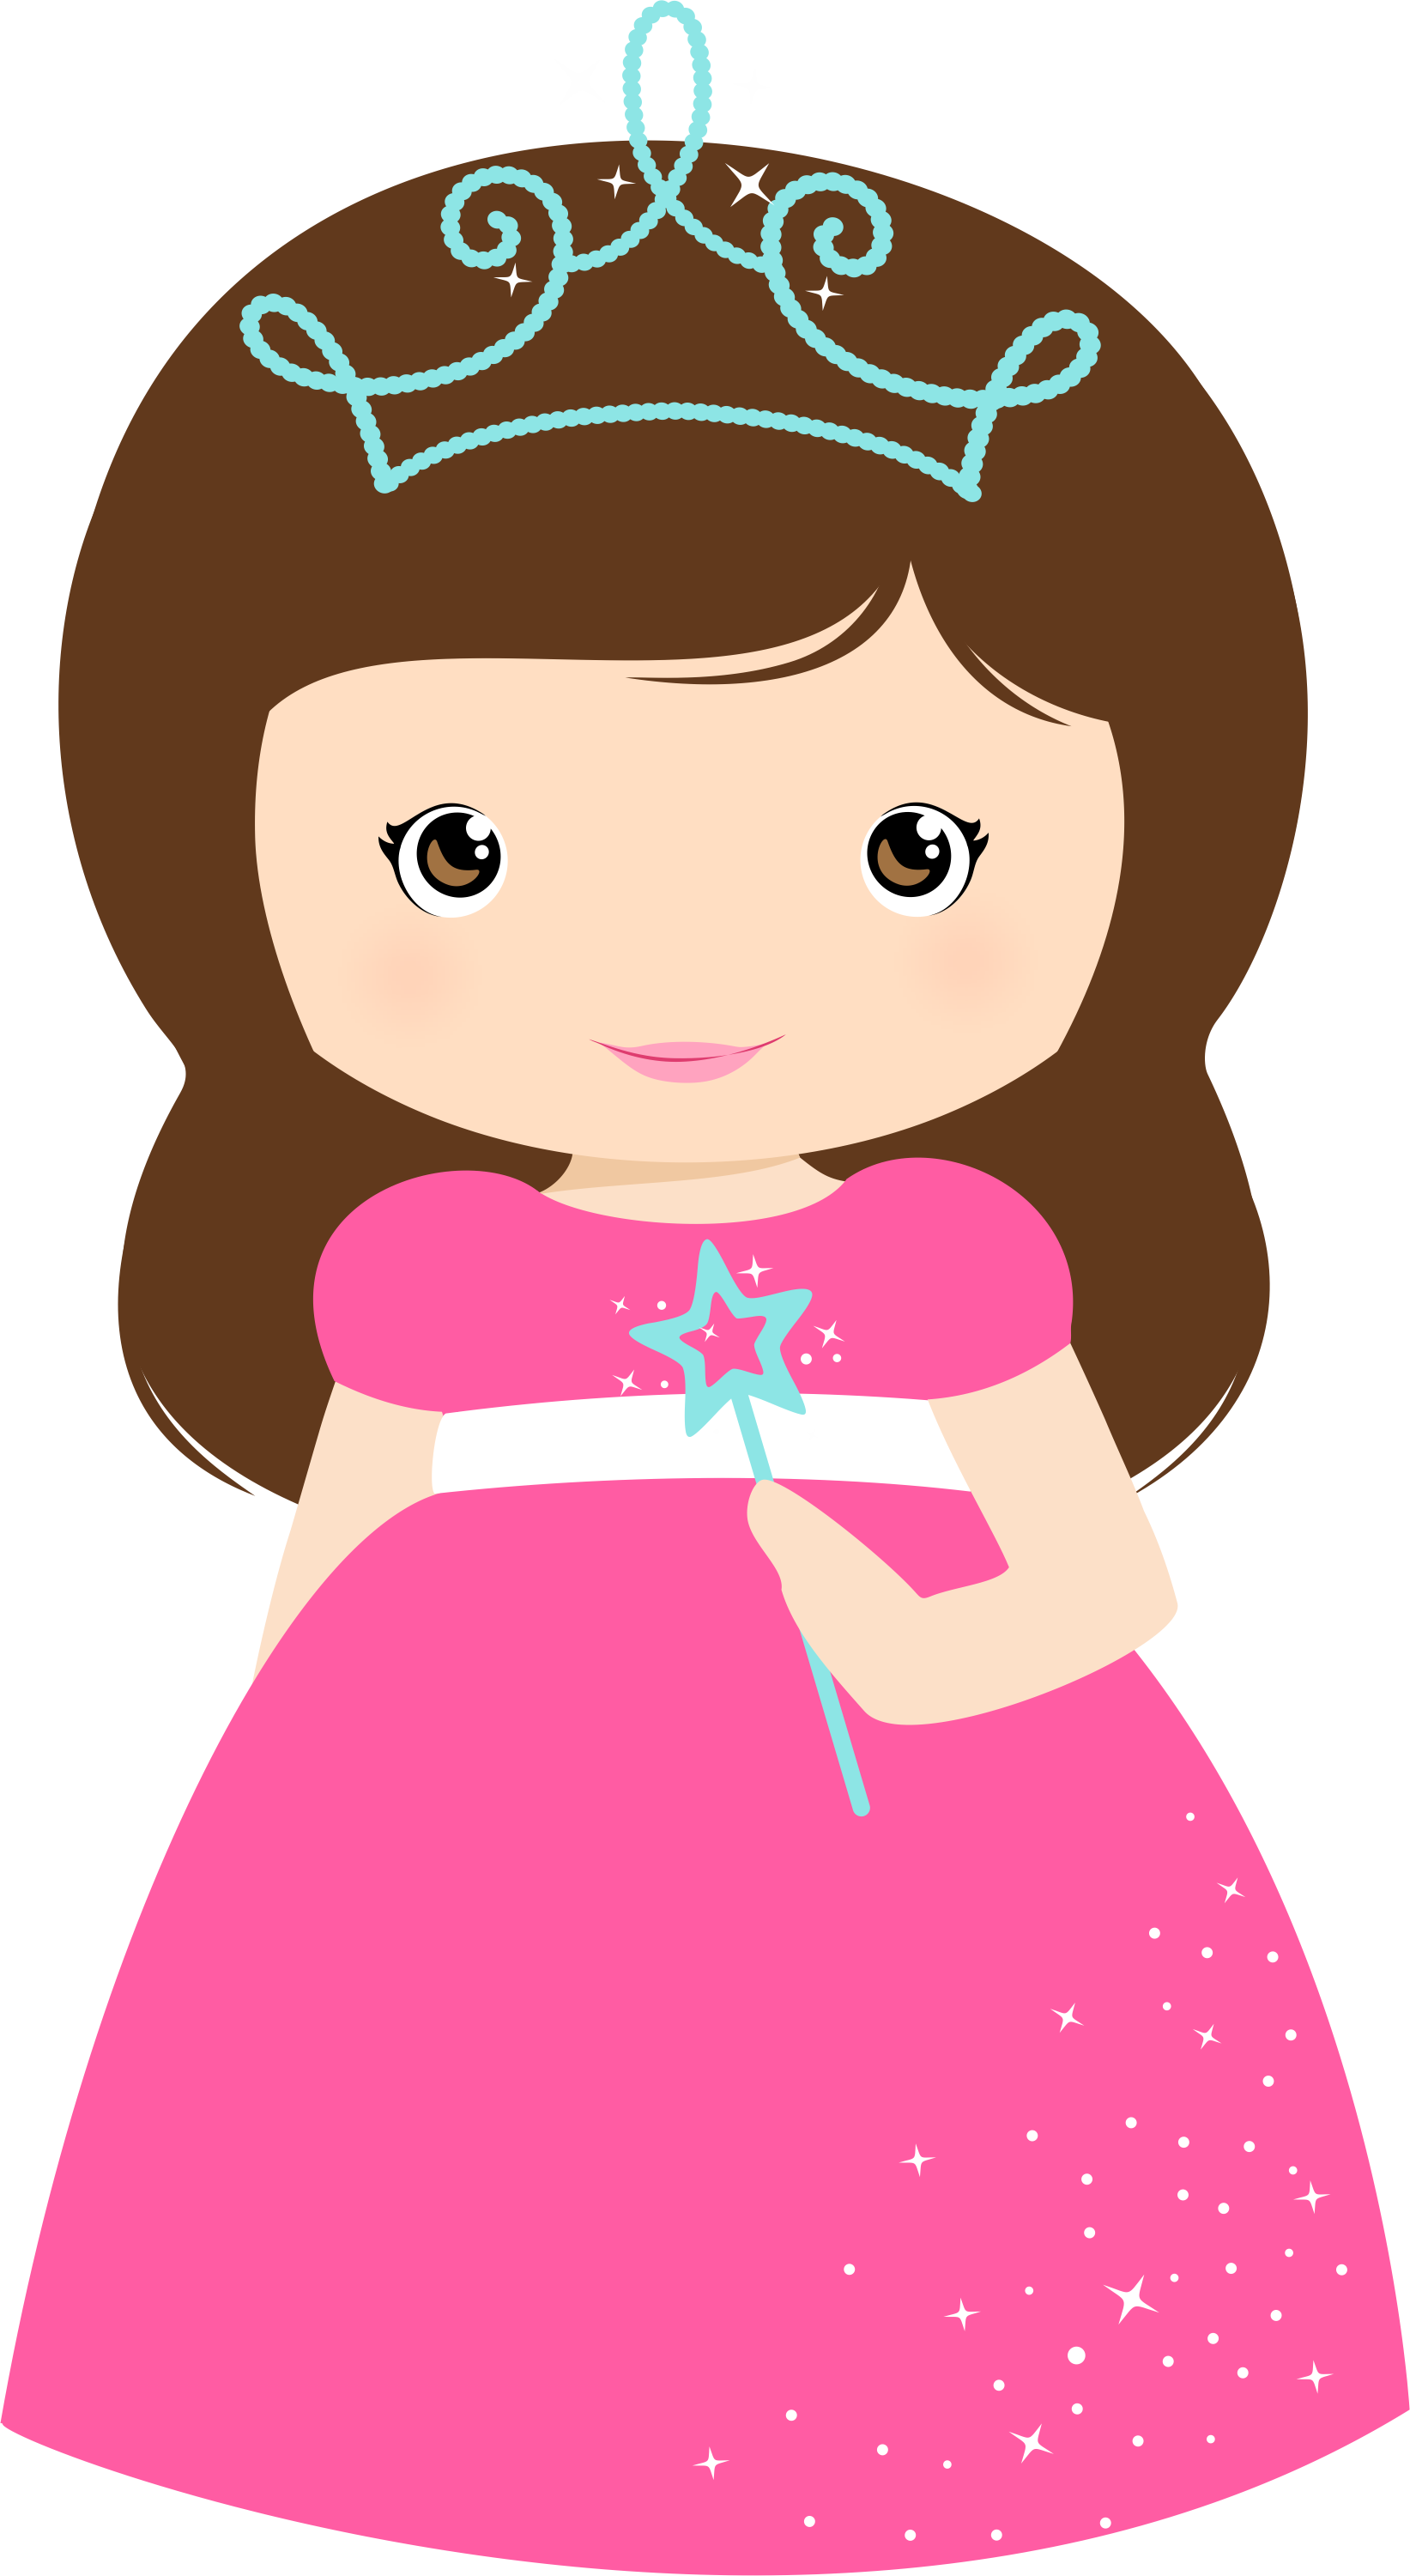 Baby girl with crown clipart picture transparent download Baby Disney Princess Clipart at GetDrawings.com | Free for personal ... picture transparent download